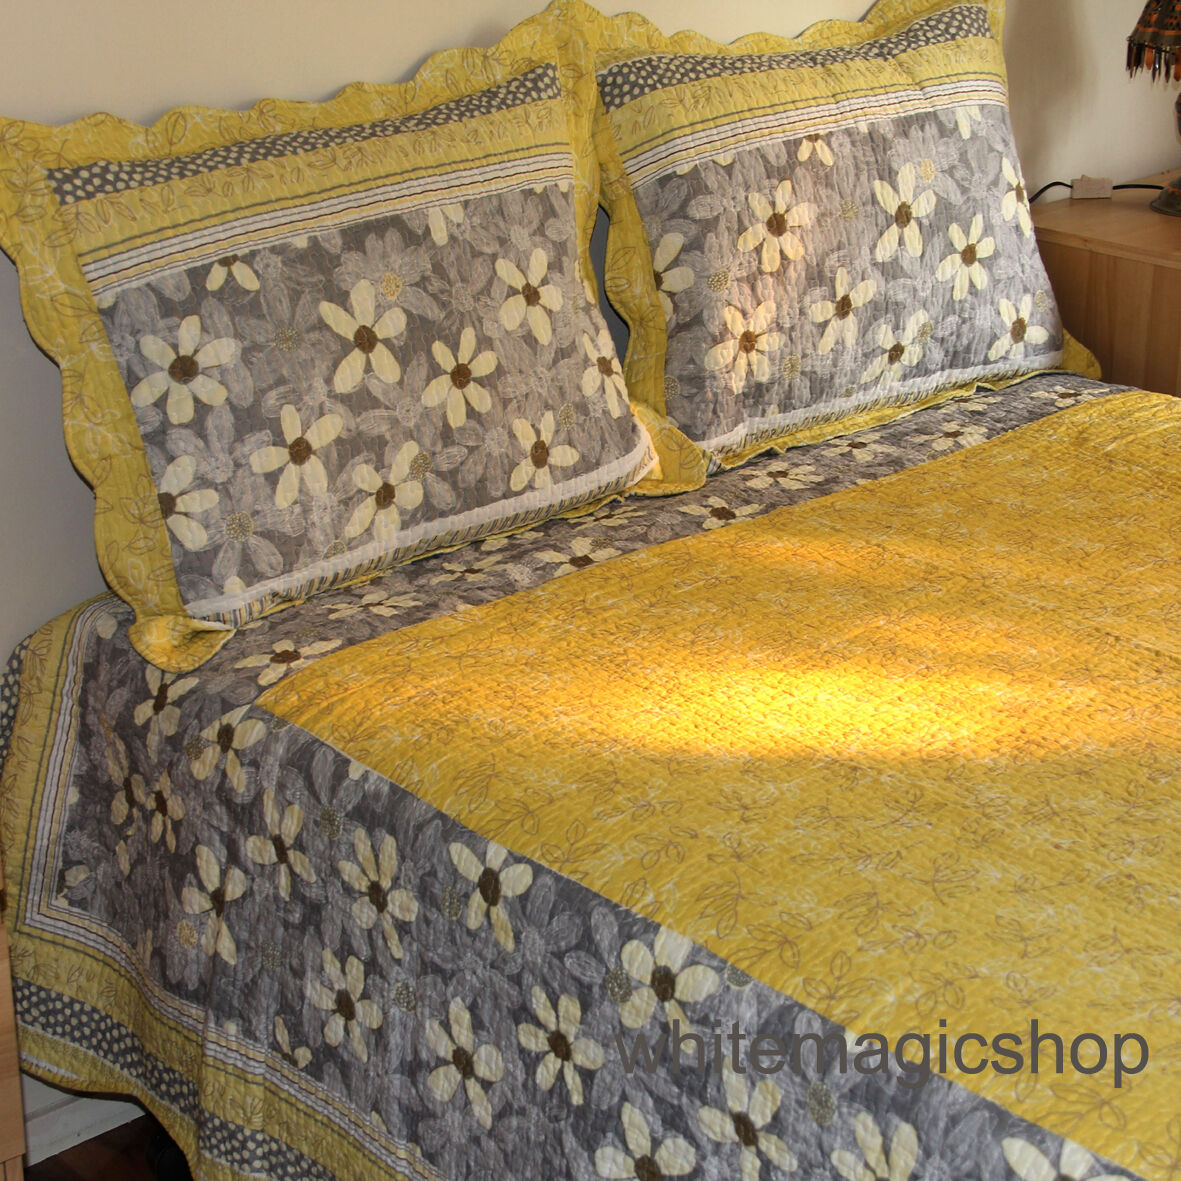 Bedspread Reversible Cotton Quilted Bedspread 3PCS Set In Bright Gelb Queen